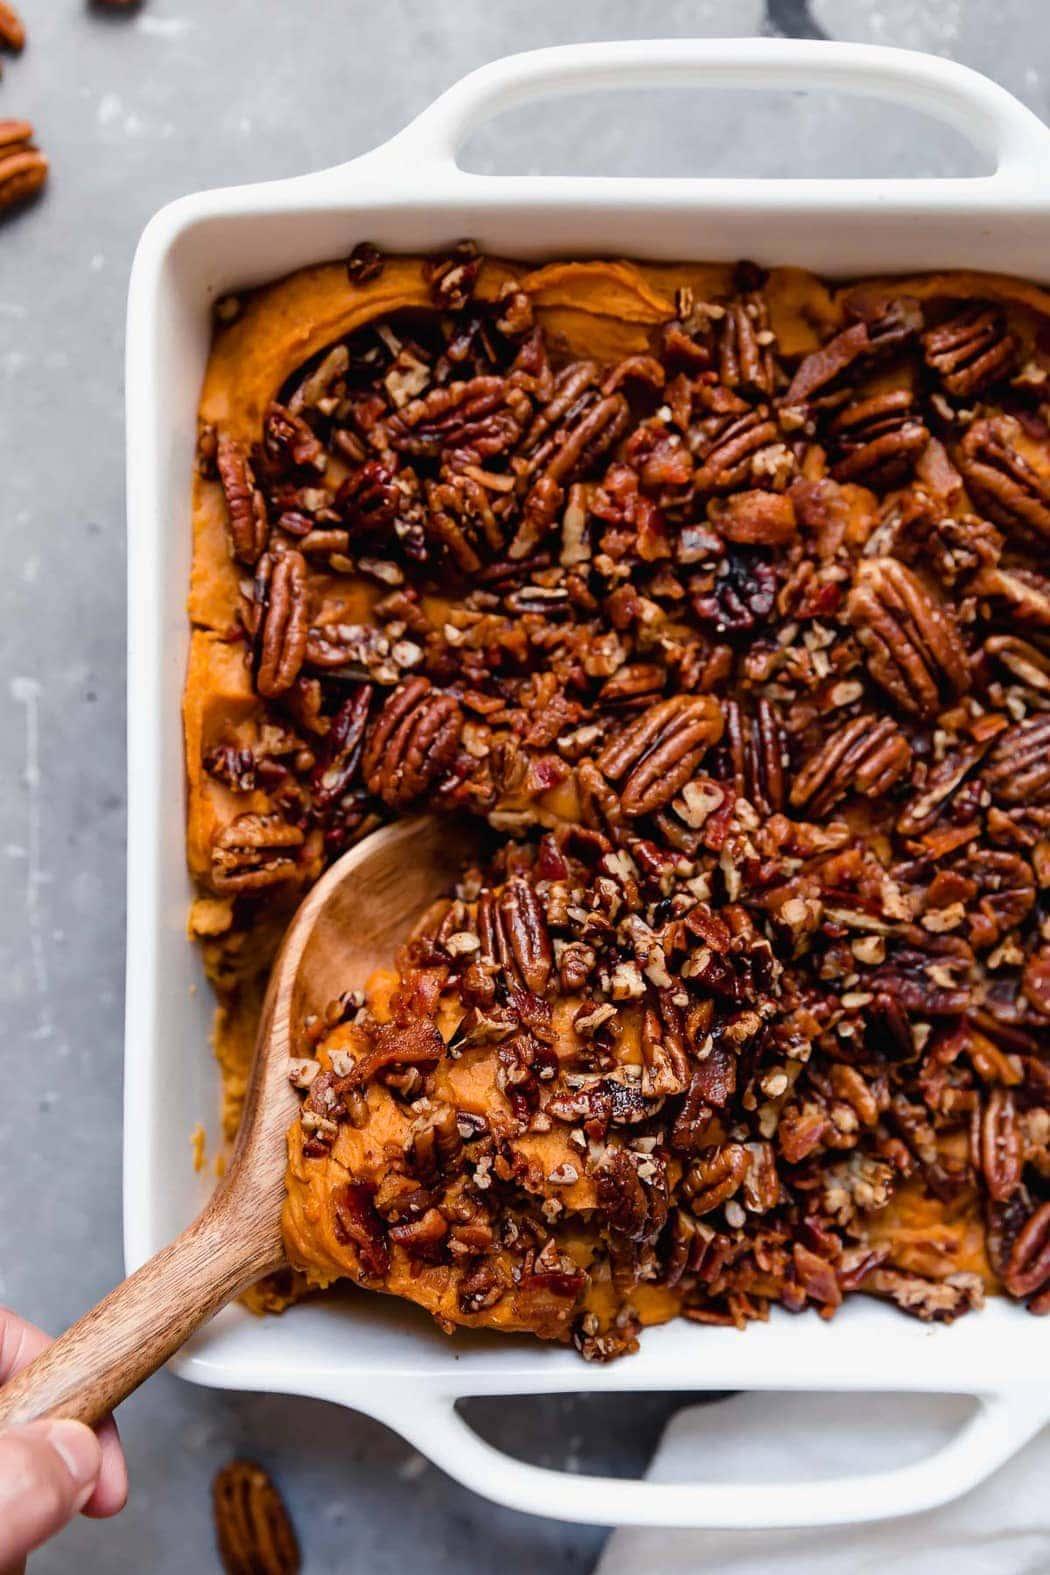 Healthy Sweet Potato Casserole in square white baking dish covered in pecans with a scoop being taken out with a wooden spoon. Part of the 12 Healthy Thanksgiving Side Dish Recipes.